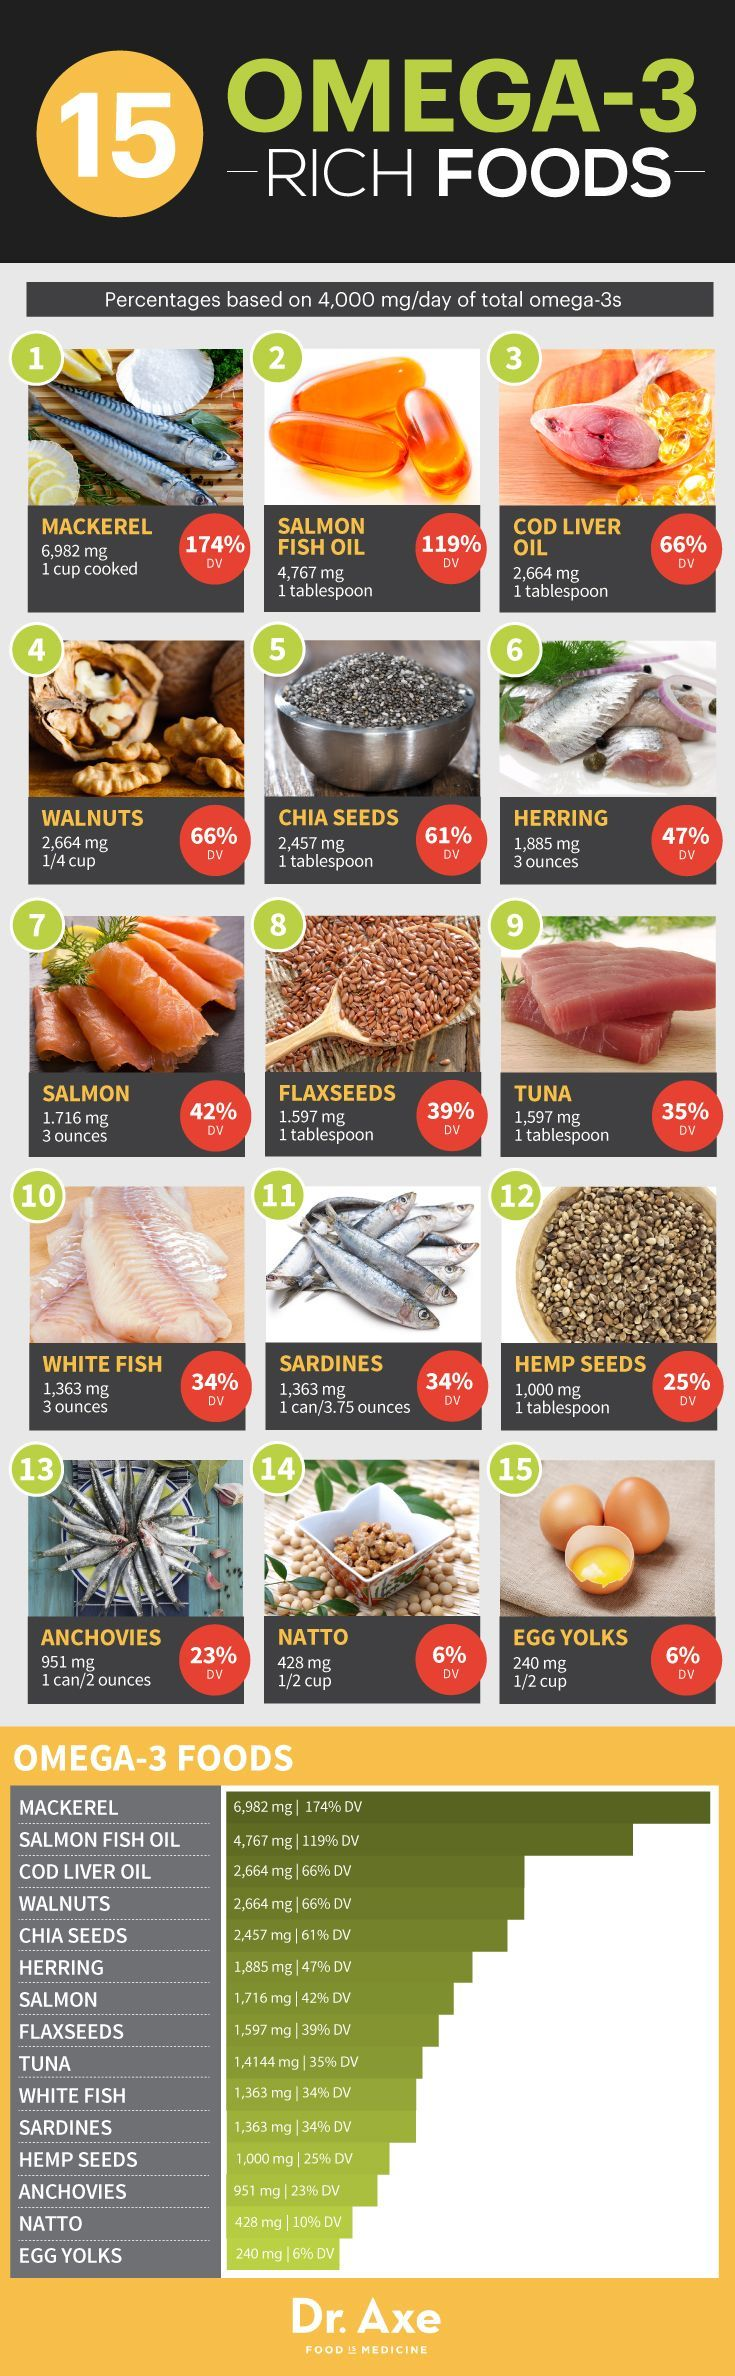 Omega-3 foods  www.draxe.com #health #holistic #natural